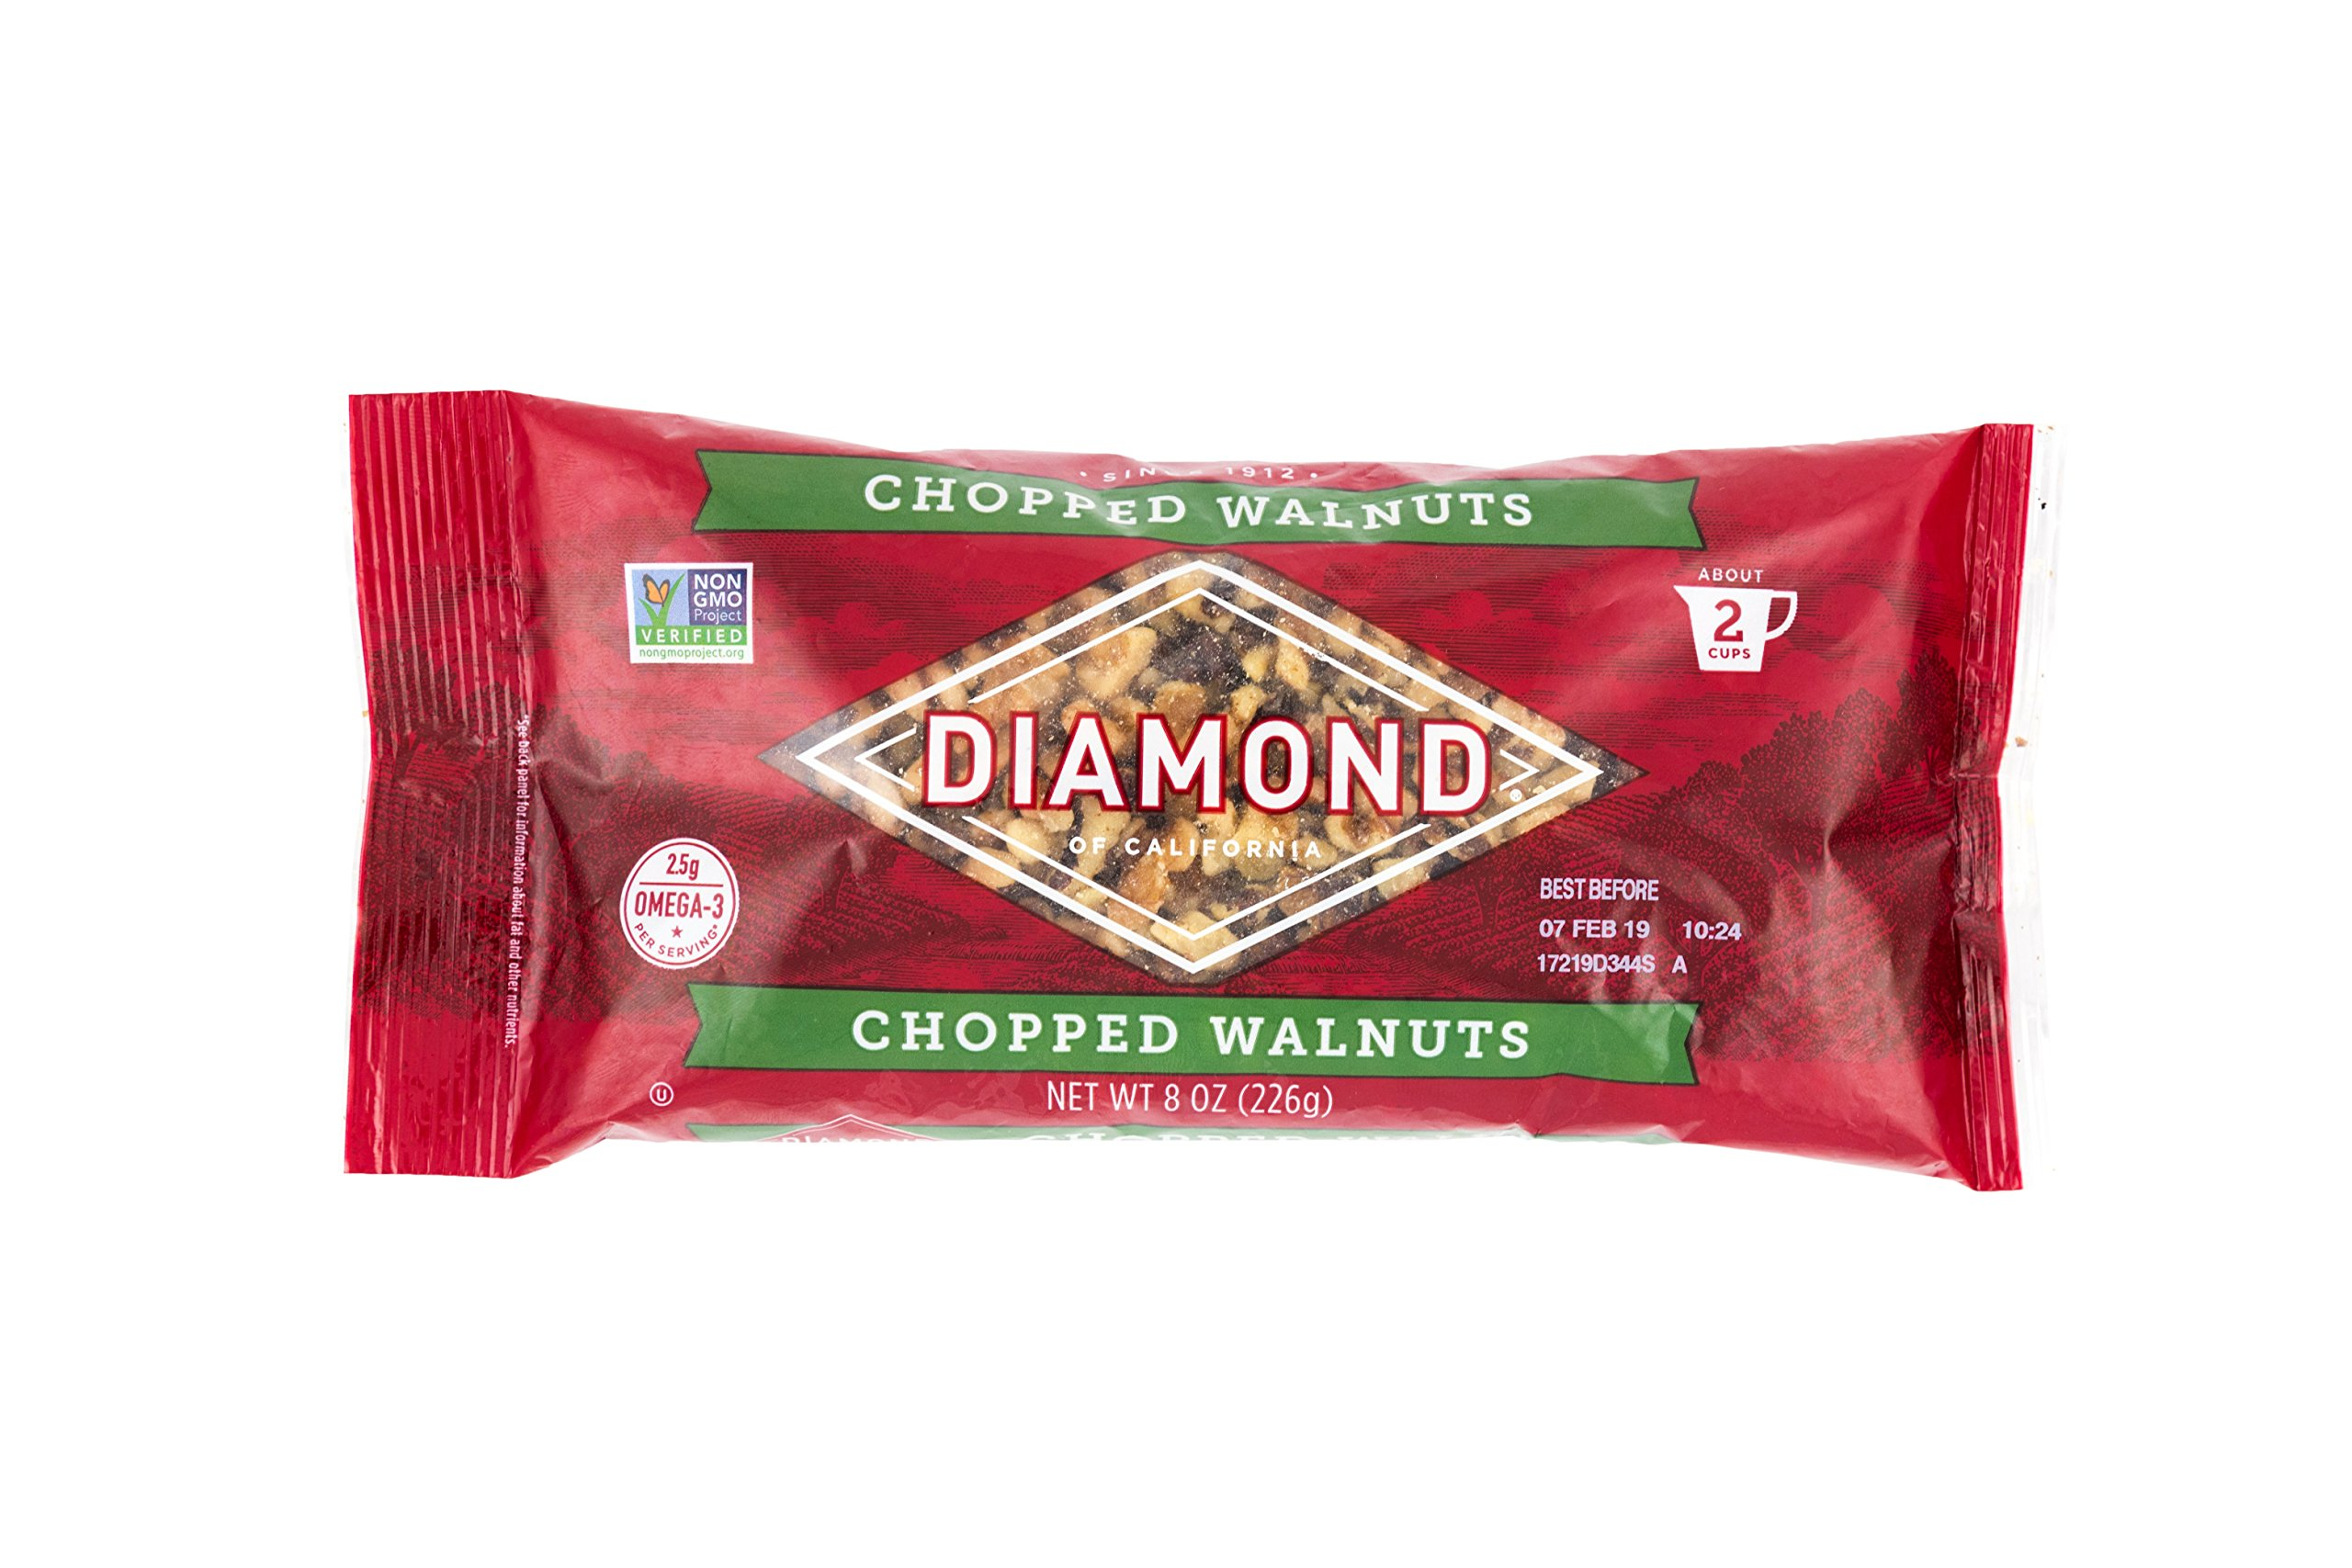 Diamond of California, Chopped Walnuts, Non GMO, No Added Salt, 8 oz. (Pack of 12) by Diamond of California